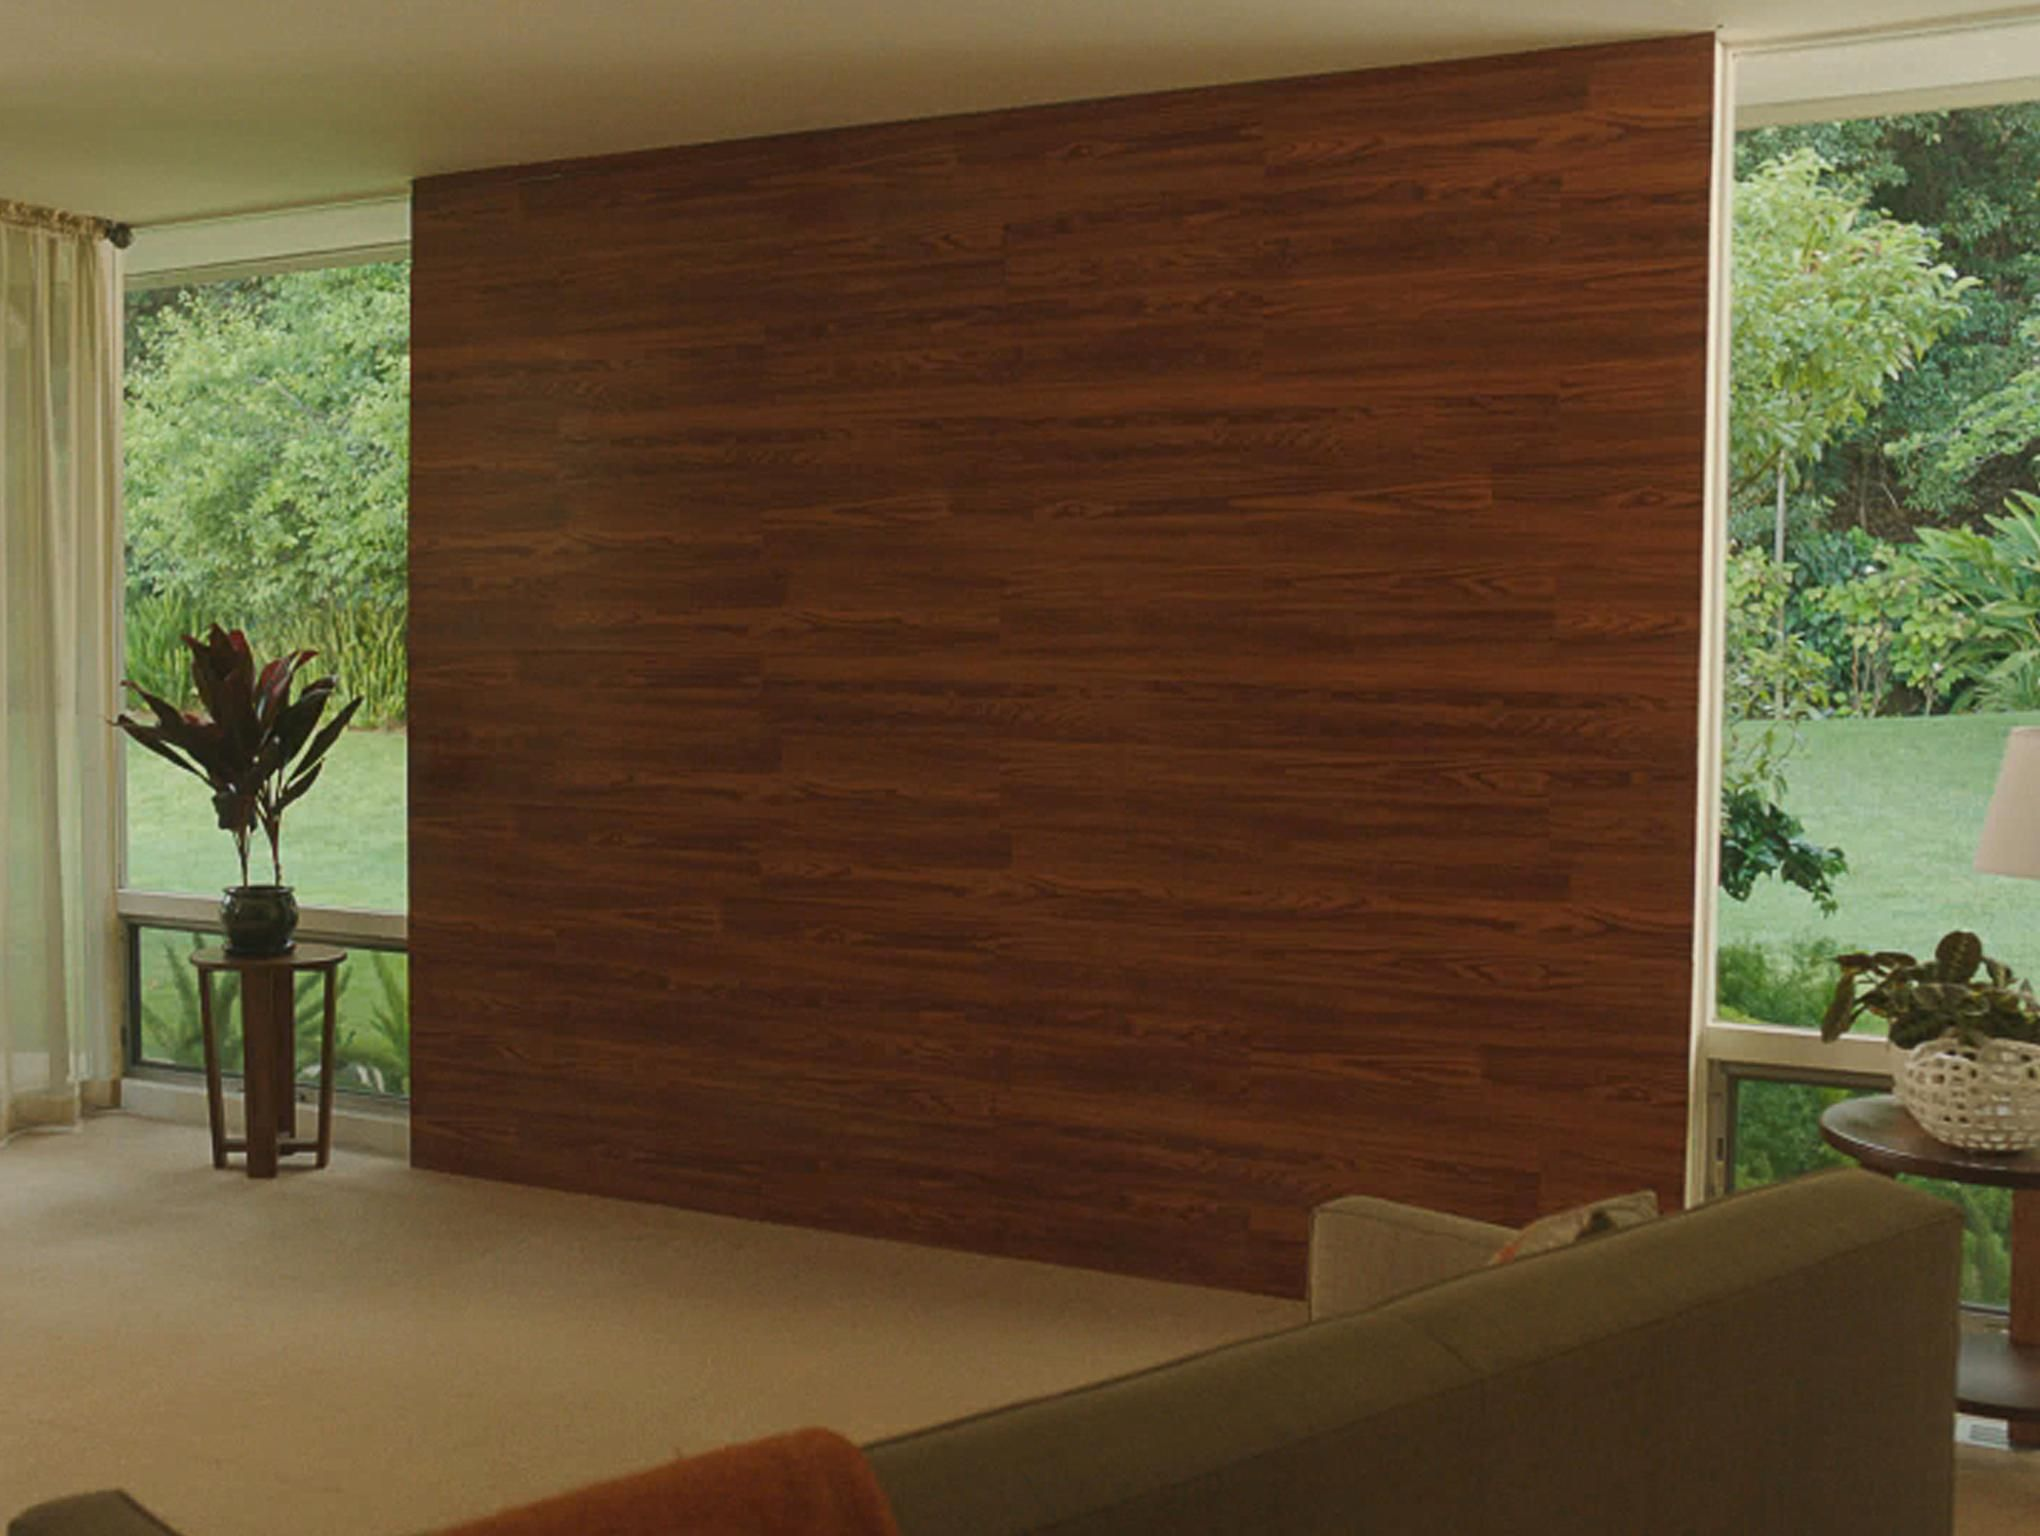 How To Build A Wall Using Laminate Flooring The Home